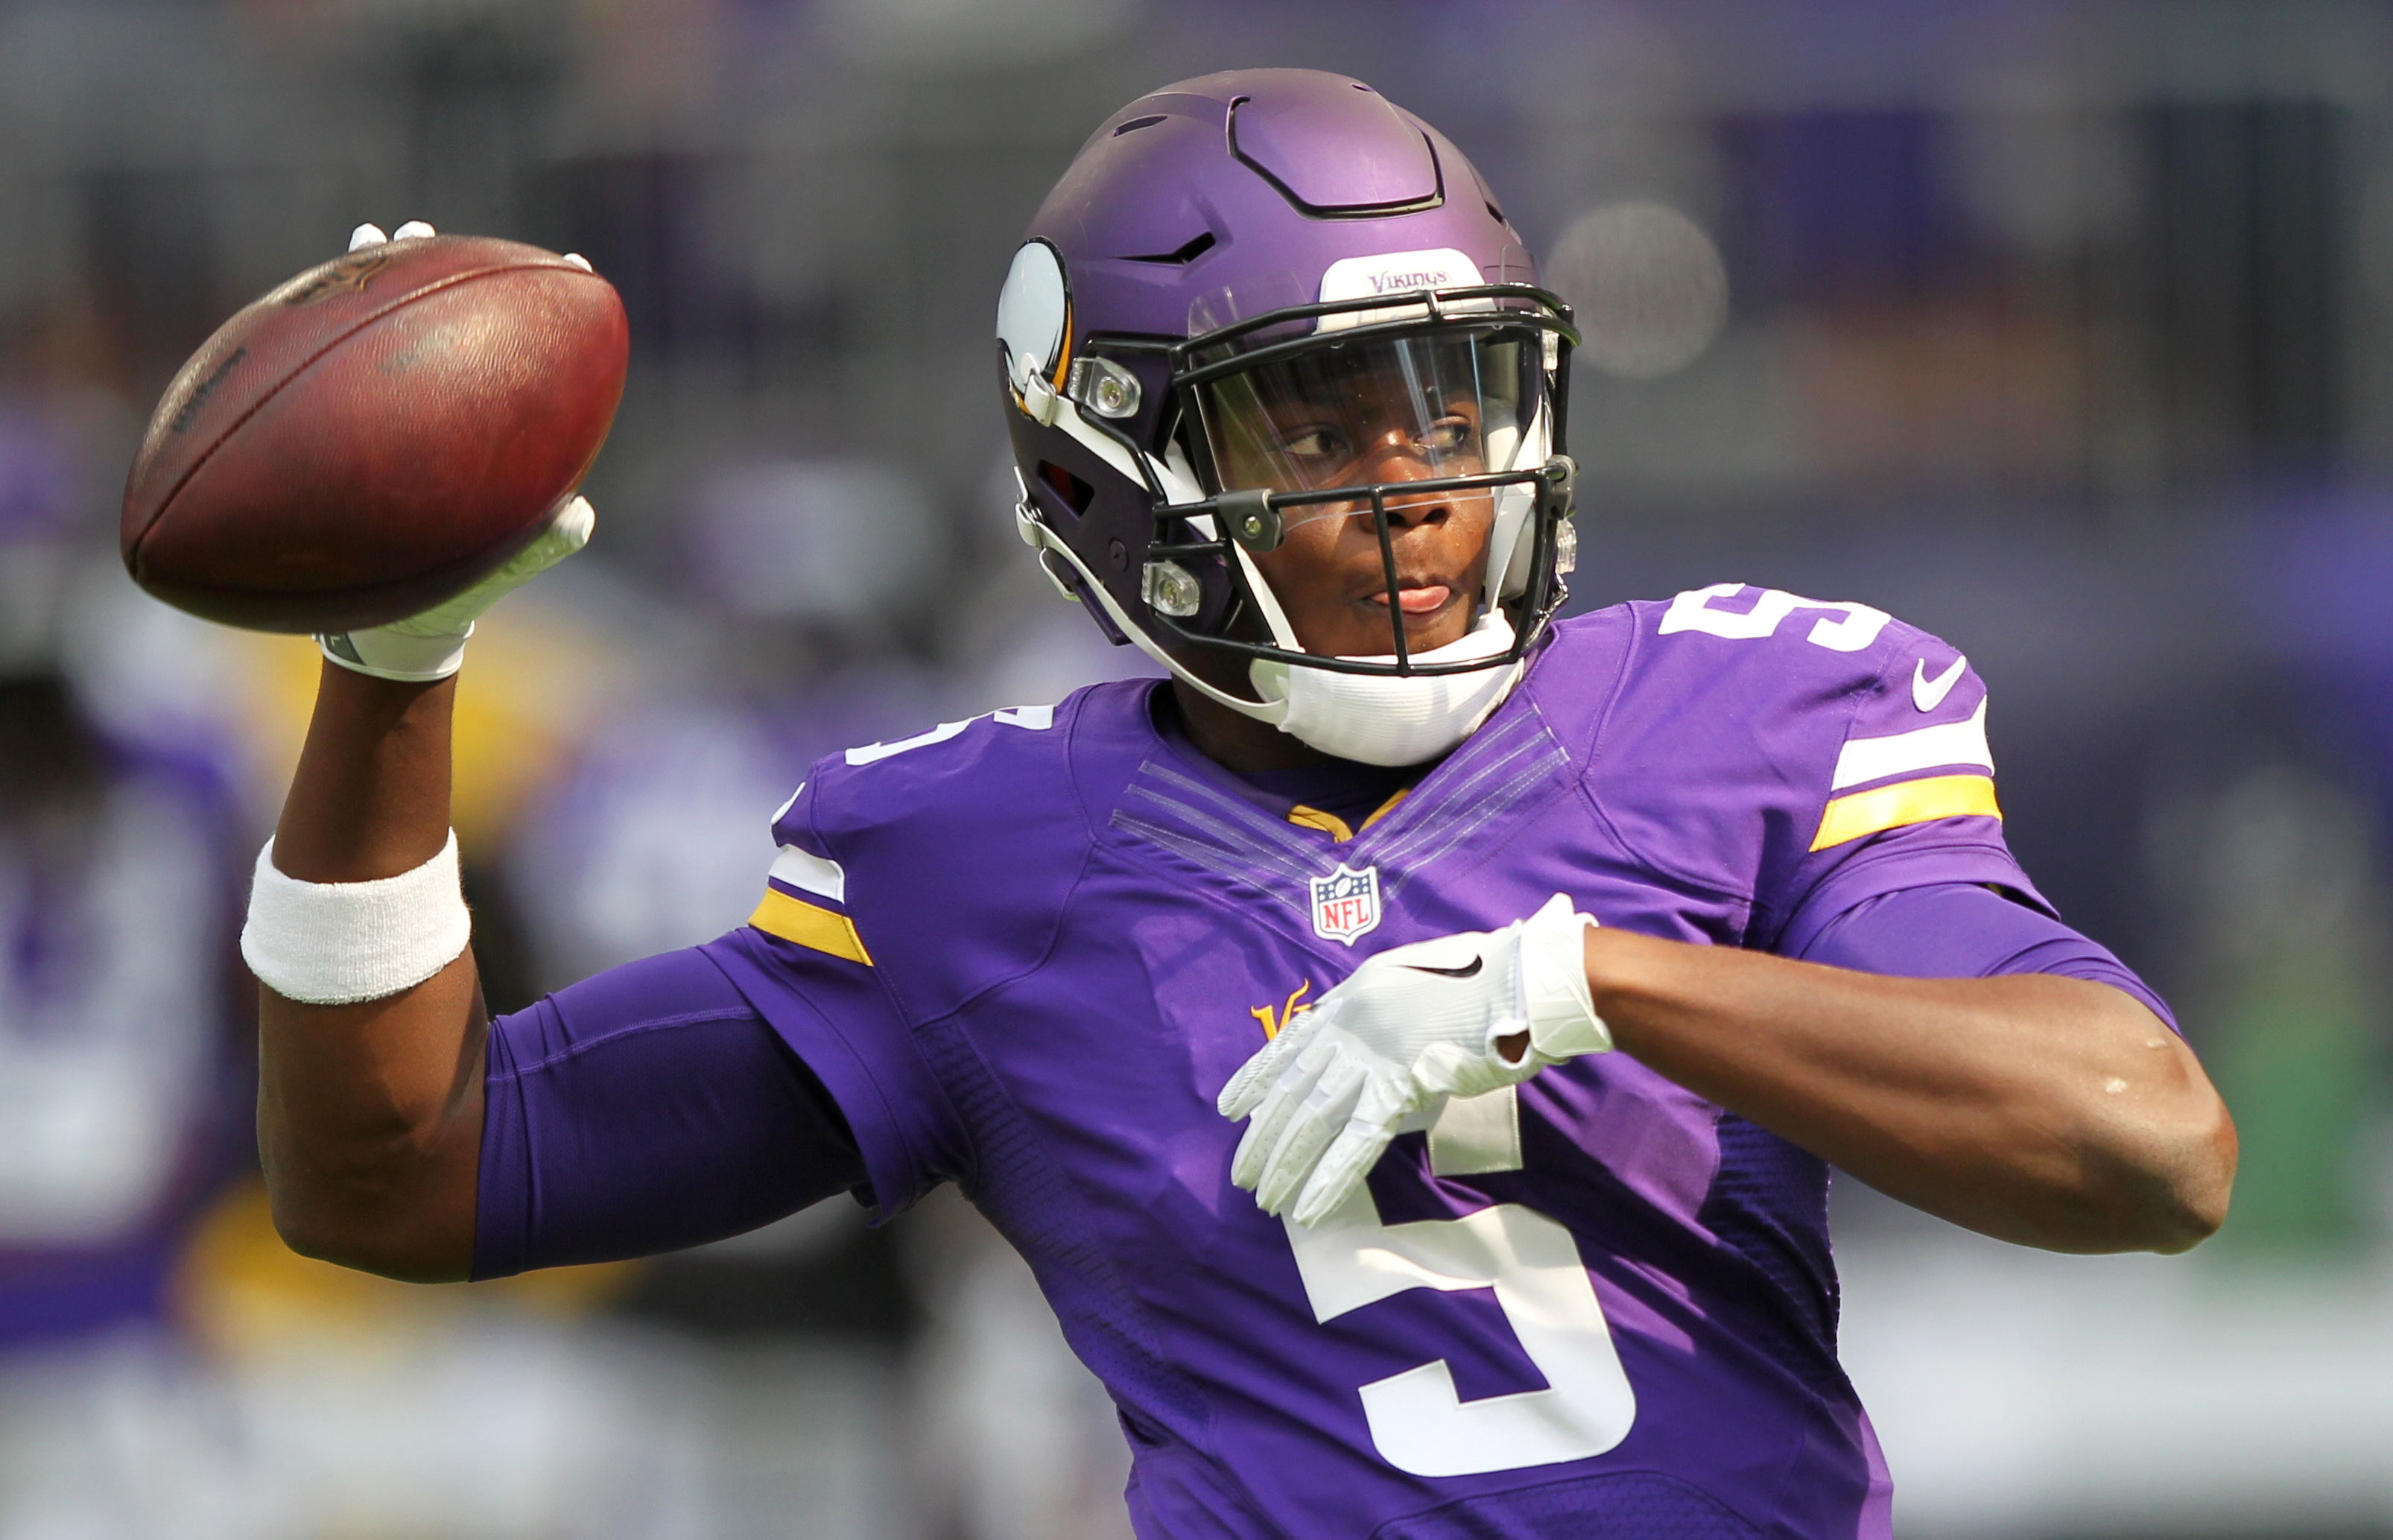 Minnesota Vikings quarterback Teddy Bridgewater (5) warms up before an NFL preseason football game against the San Diego Chargers Sunday, Aug. 28, 2016, in Minneapolis. (AP Photo/Andy Clayton-King)